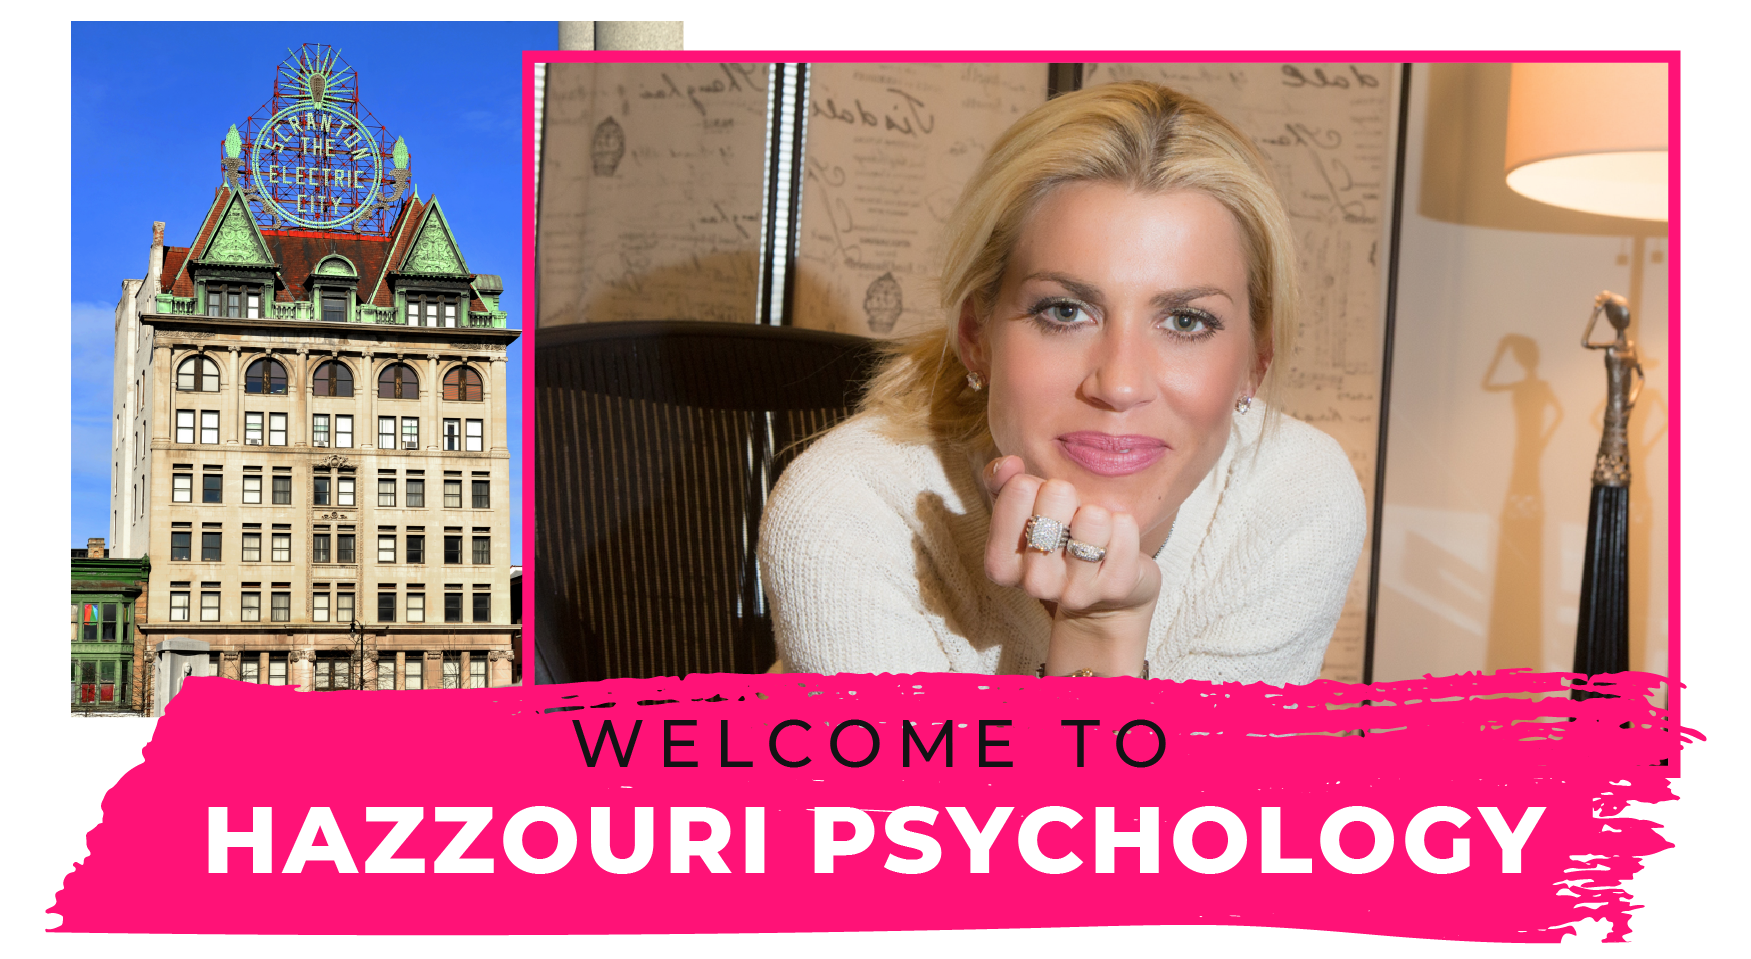 Hazzouri Psychology is a a full-service psychology practice in Scranton, Pennsylvania owned and operated by Dr. Lauren Hazzouri